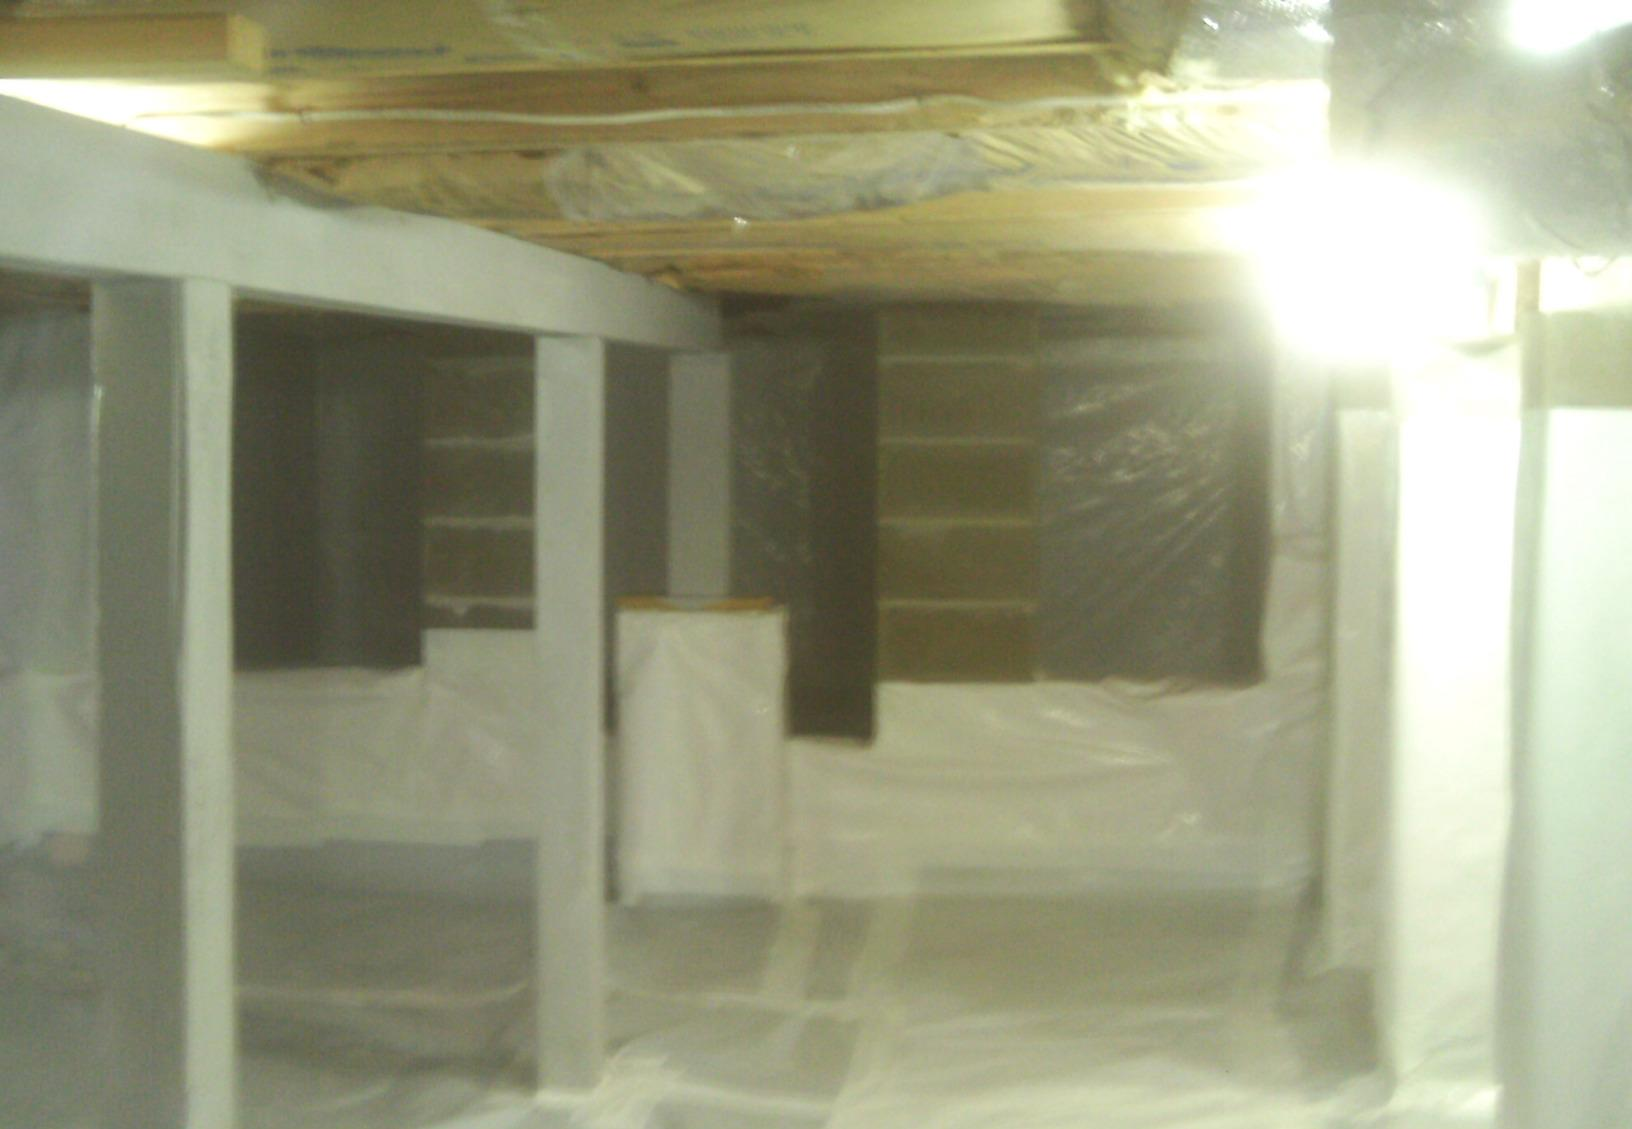 CleanSpace comes in a white color that really brightens this crawl space.